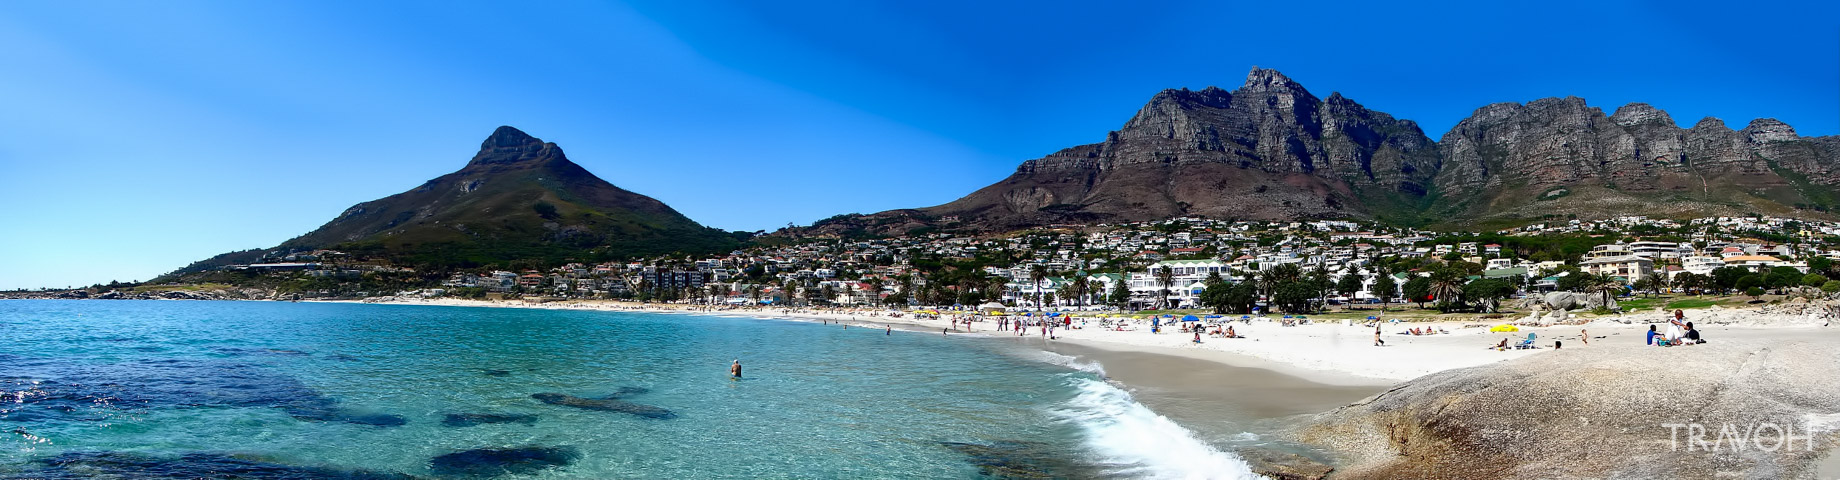 Camps Bay Beach - Exploring 10 of the Top Beaches in Cape Town, South Africa